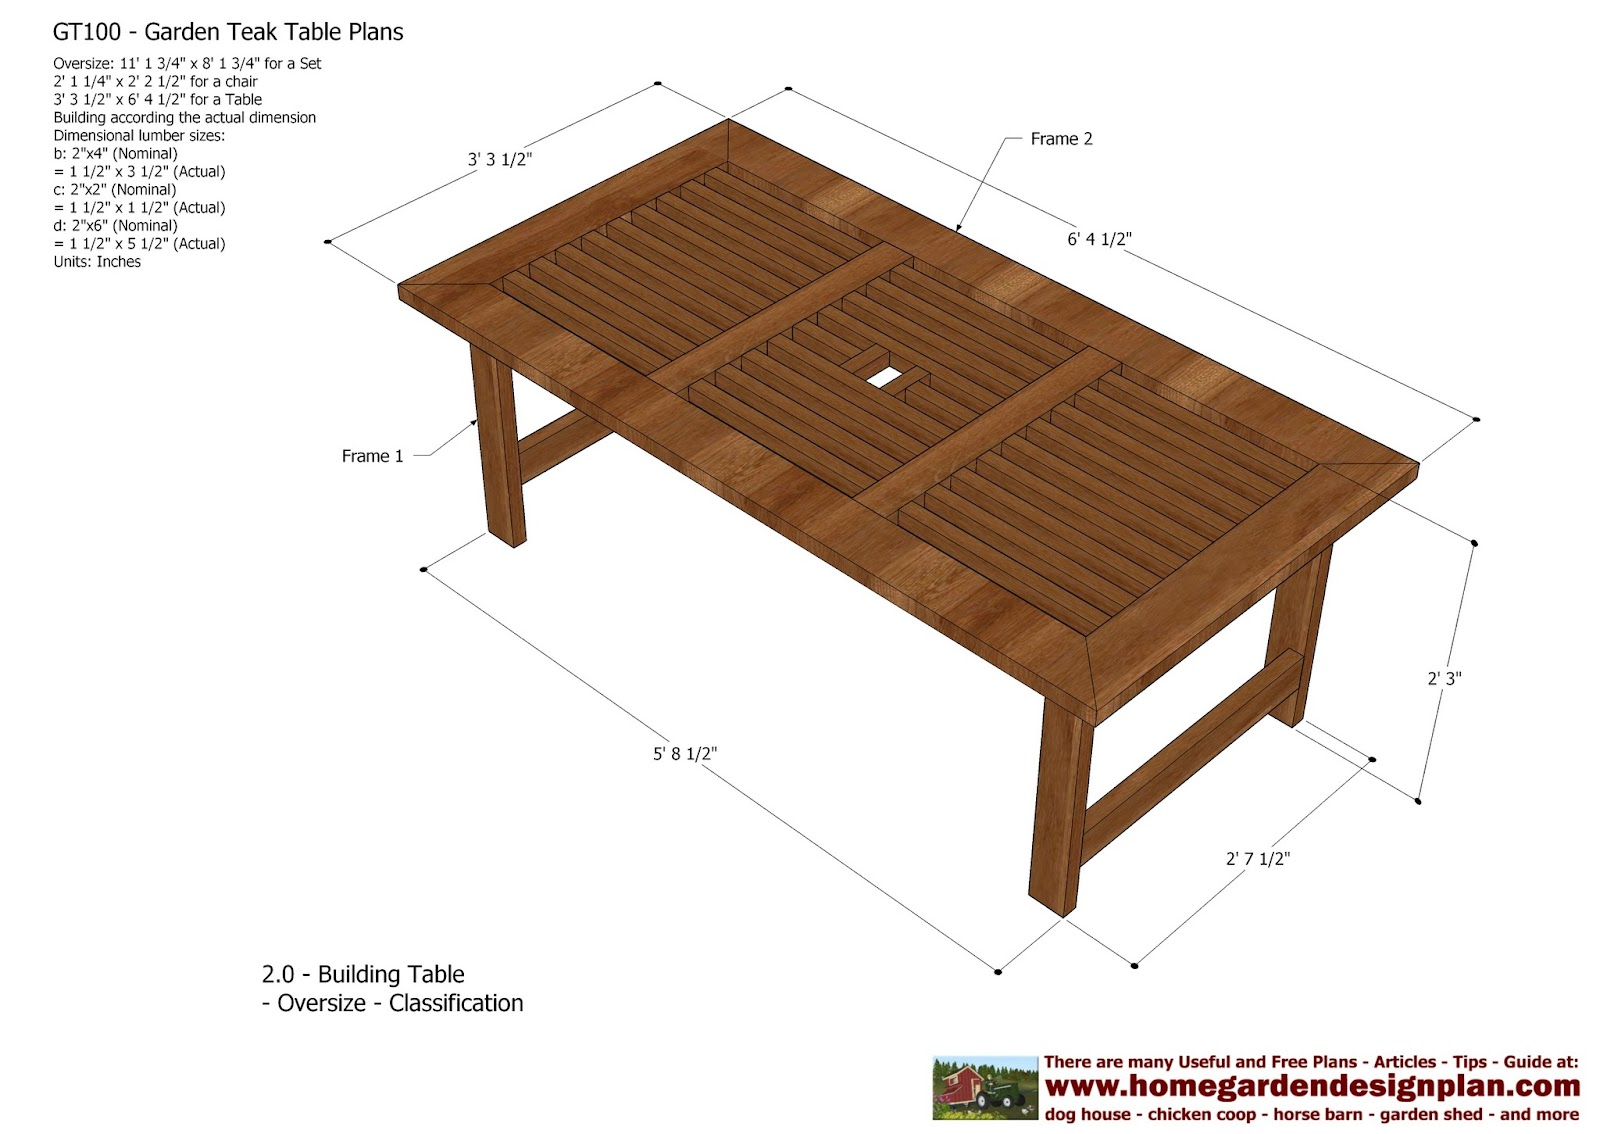 Home garden plans gt100 garden teak tables for Table design outdoor